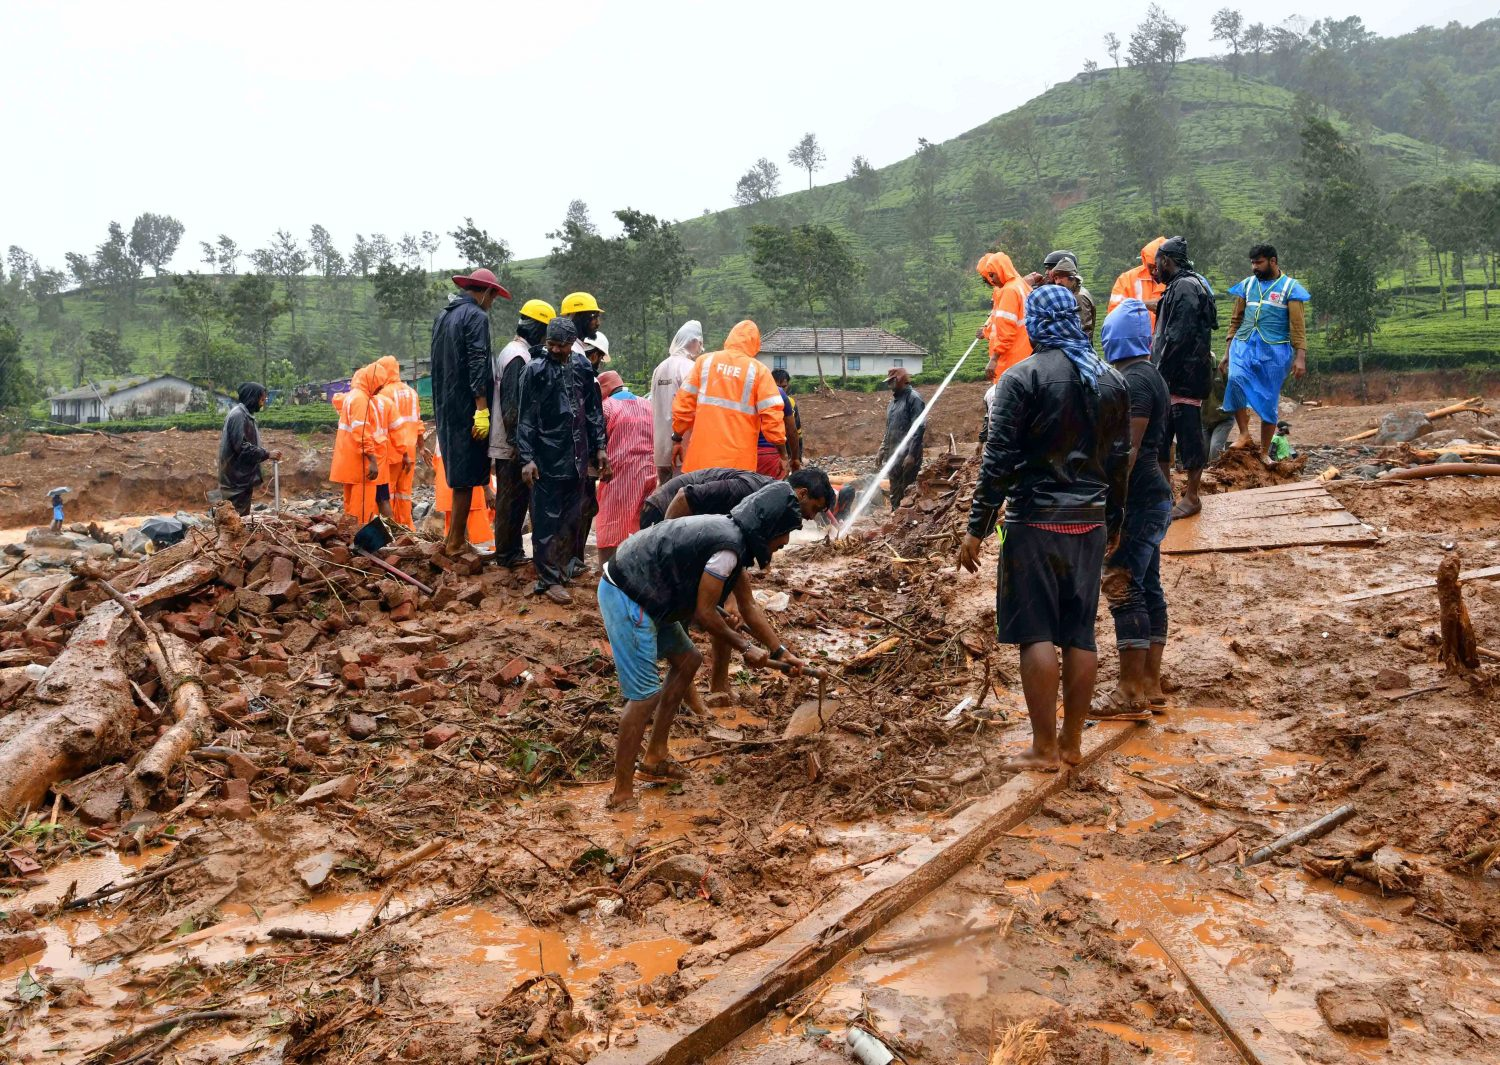 FILE PHOTO: Rescuers remove debris as they search for victims of a landslide caused by torrential monsoon rains in Meppadi in Wayanad district in the southern Indian state of Kerala, India, August 10, 2019. REUTERS/Stringer